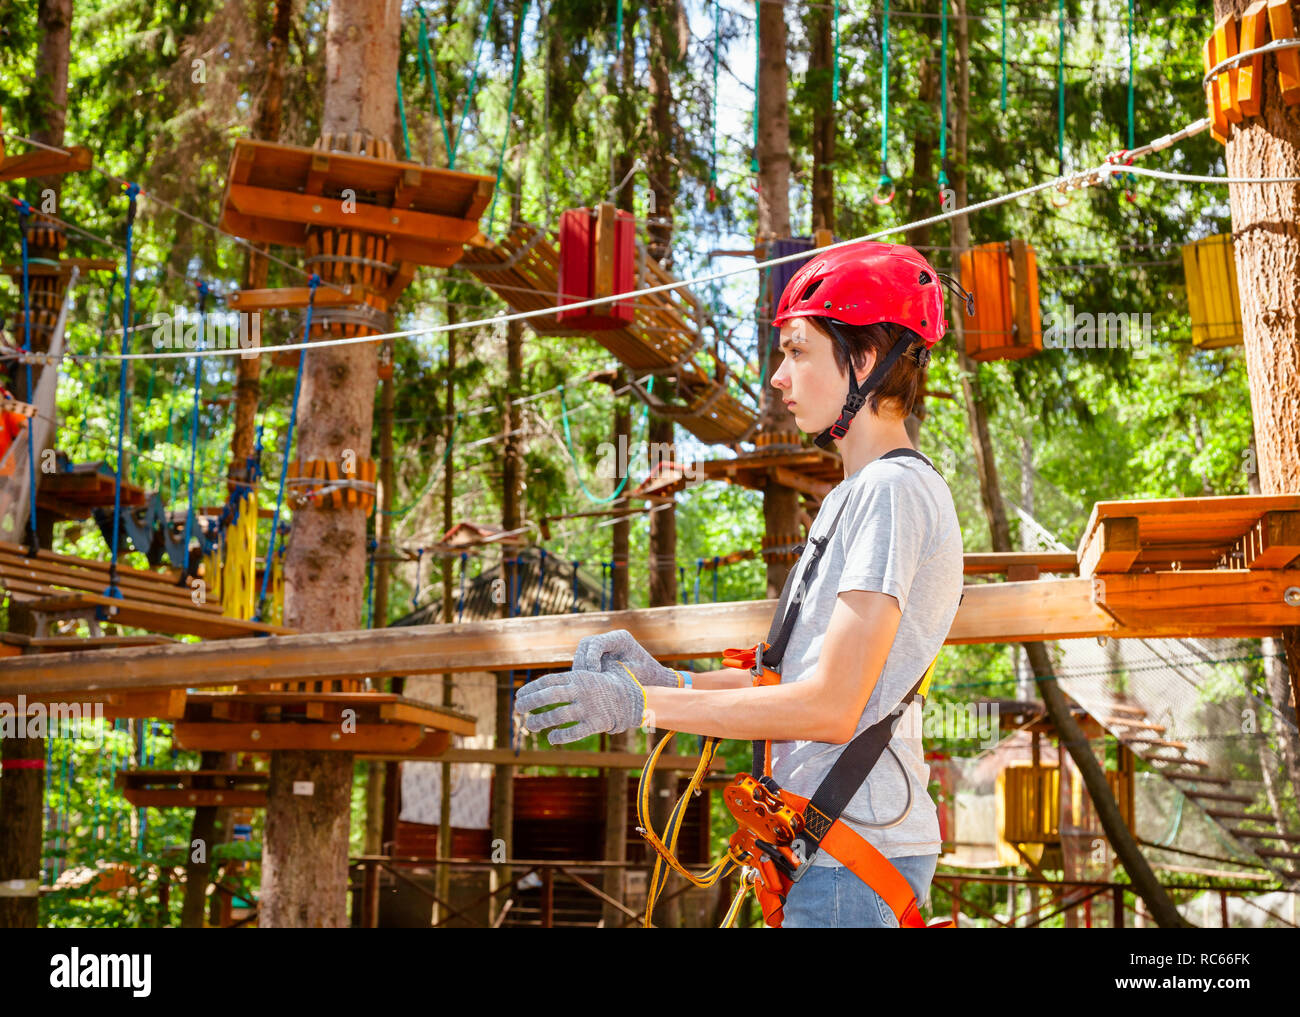 Teenager boy wearing safety harness with self belay system entering ropes course in outdoor treetop adventure park - Stock Image